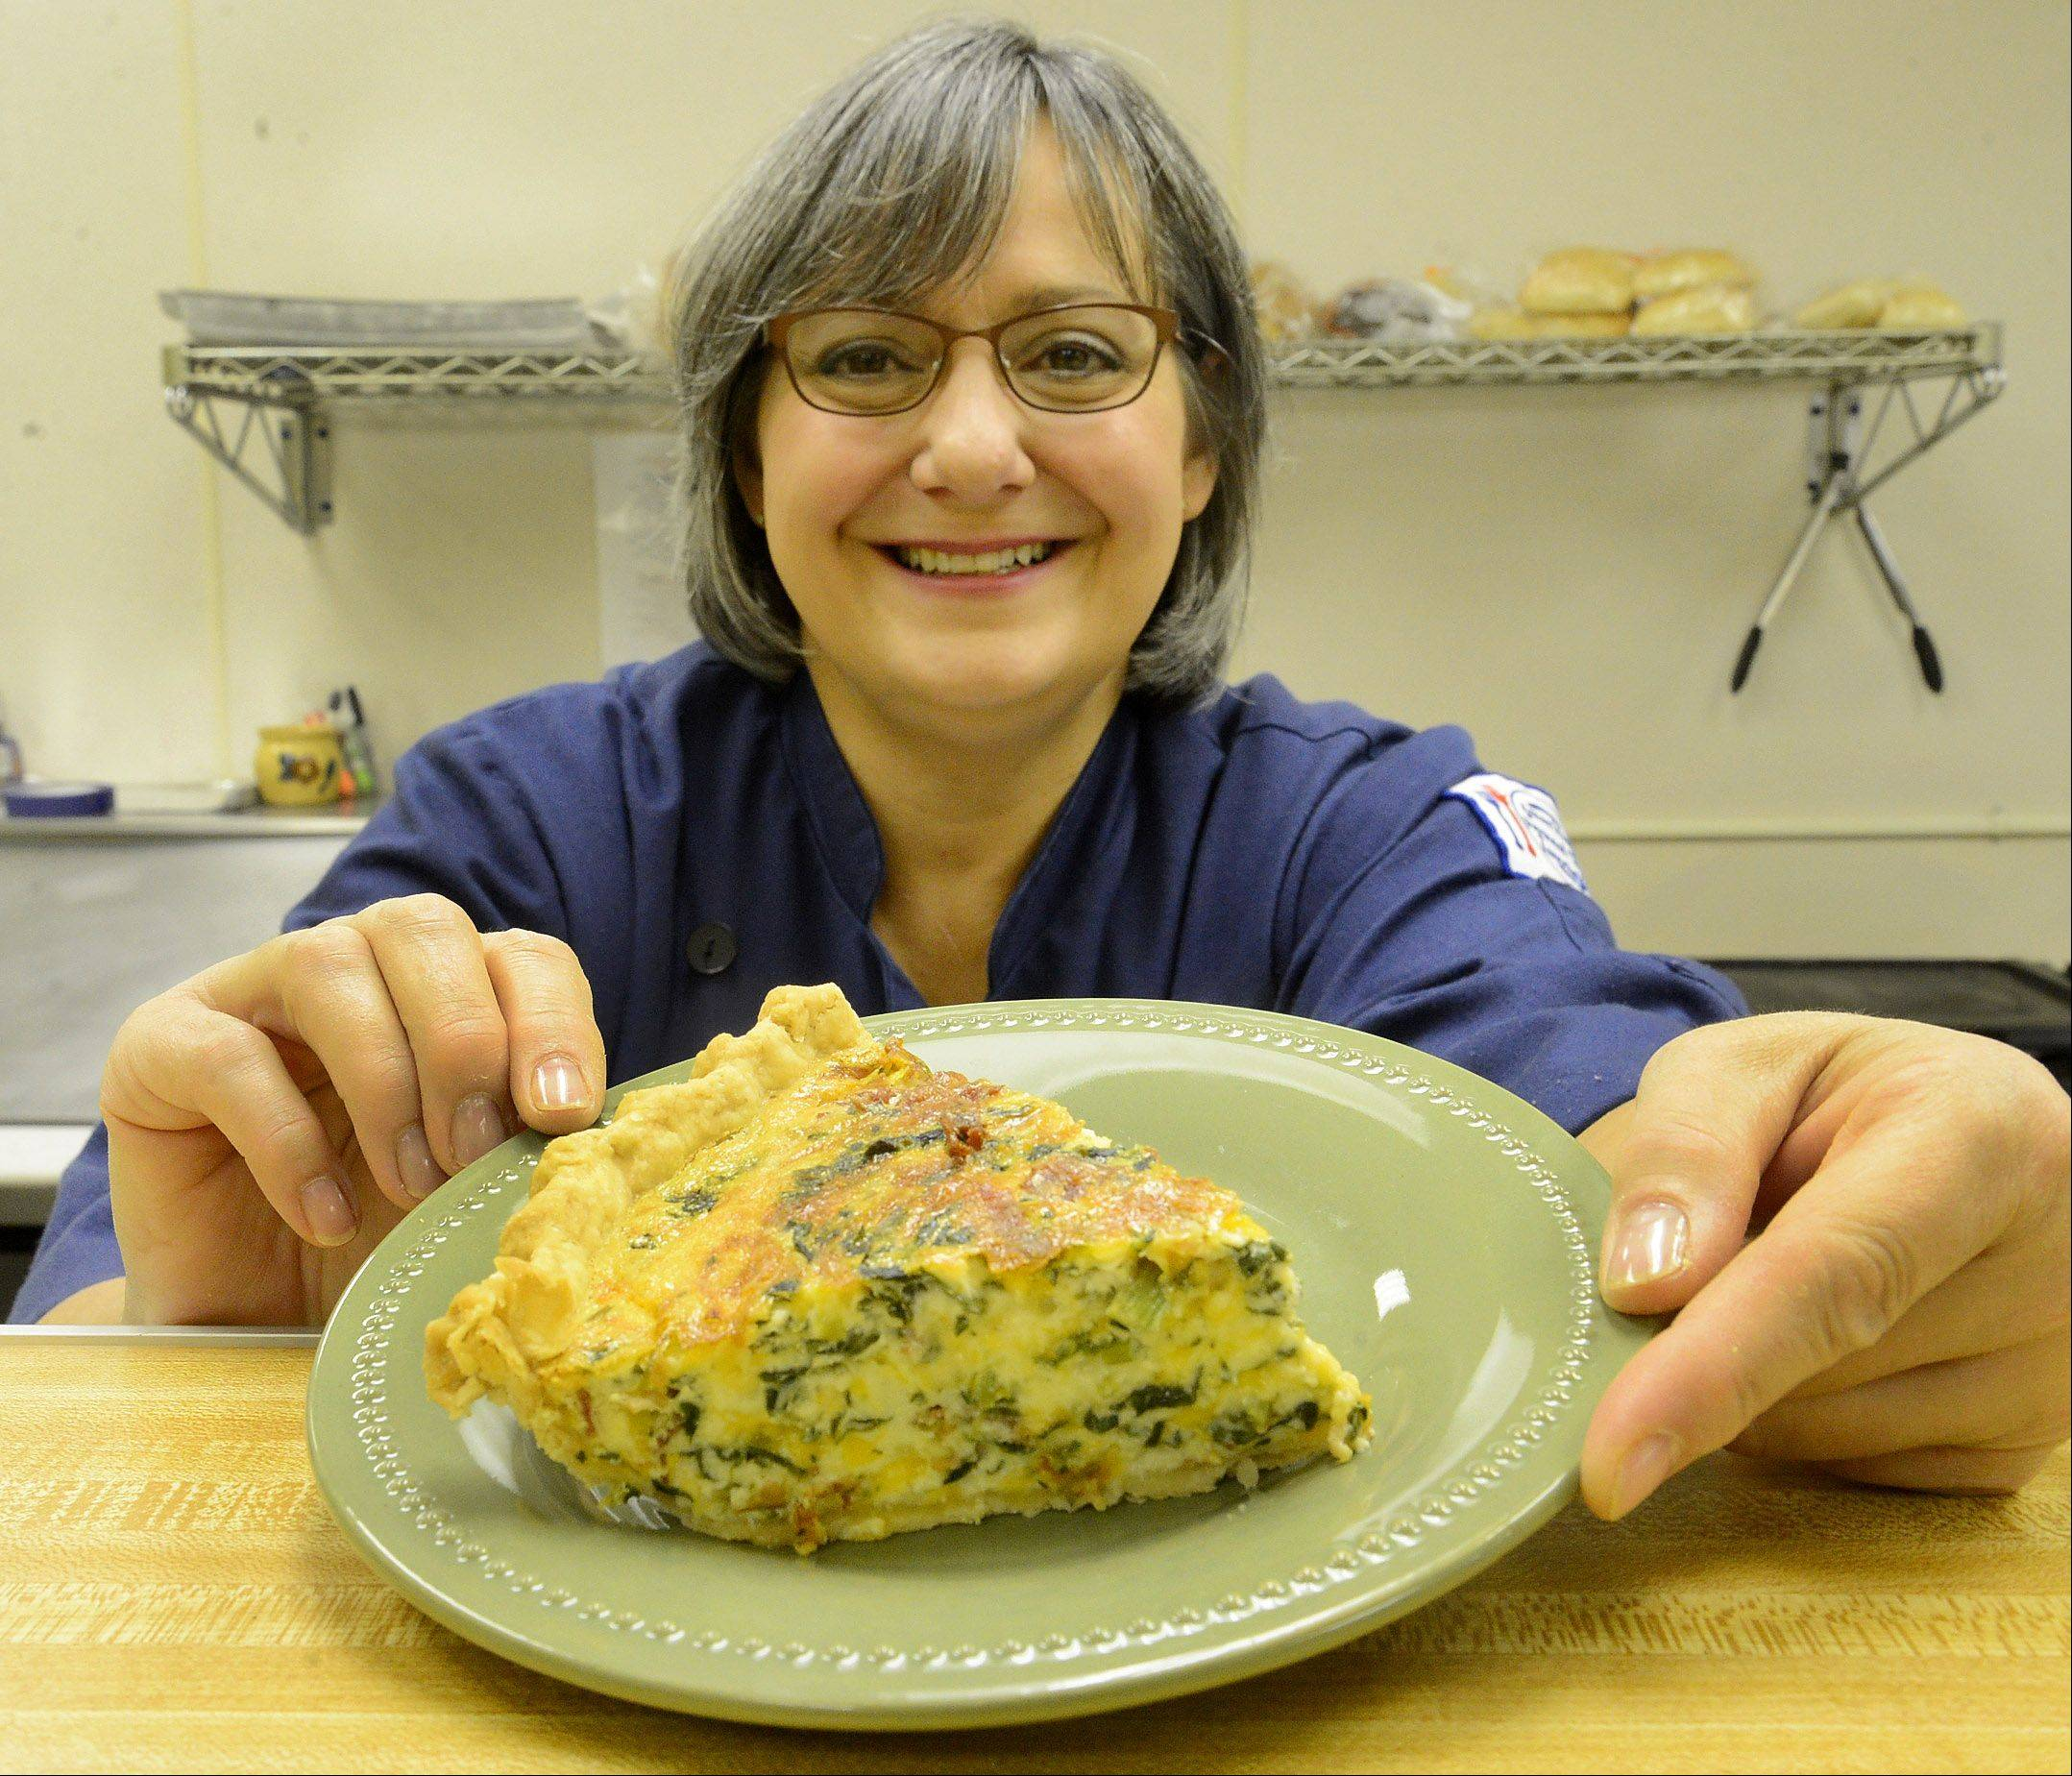 Feast of Eden chef/owner Lisa Bellan bakes Midwest ingredients into her Speedy Bacon and Cheddar Quiche.